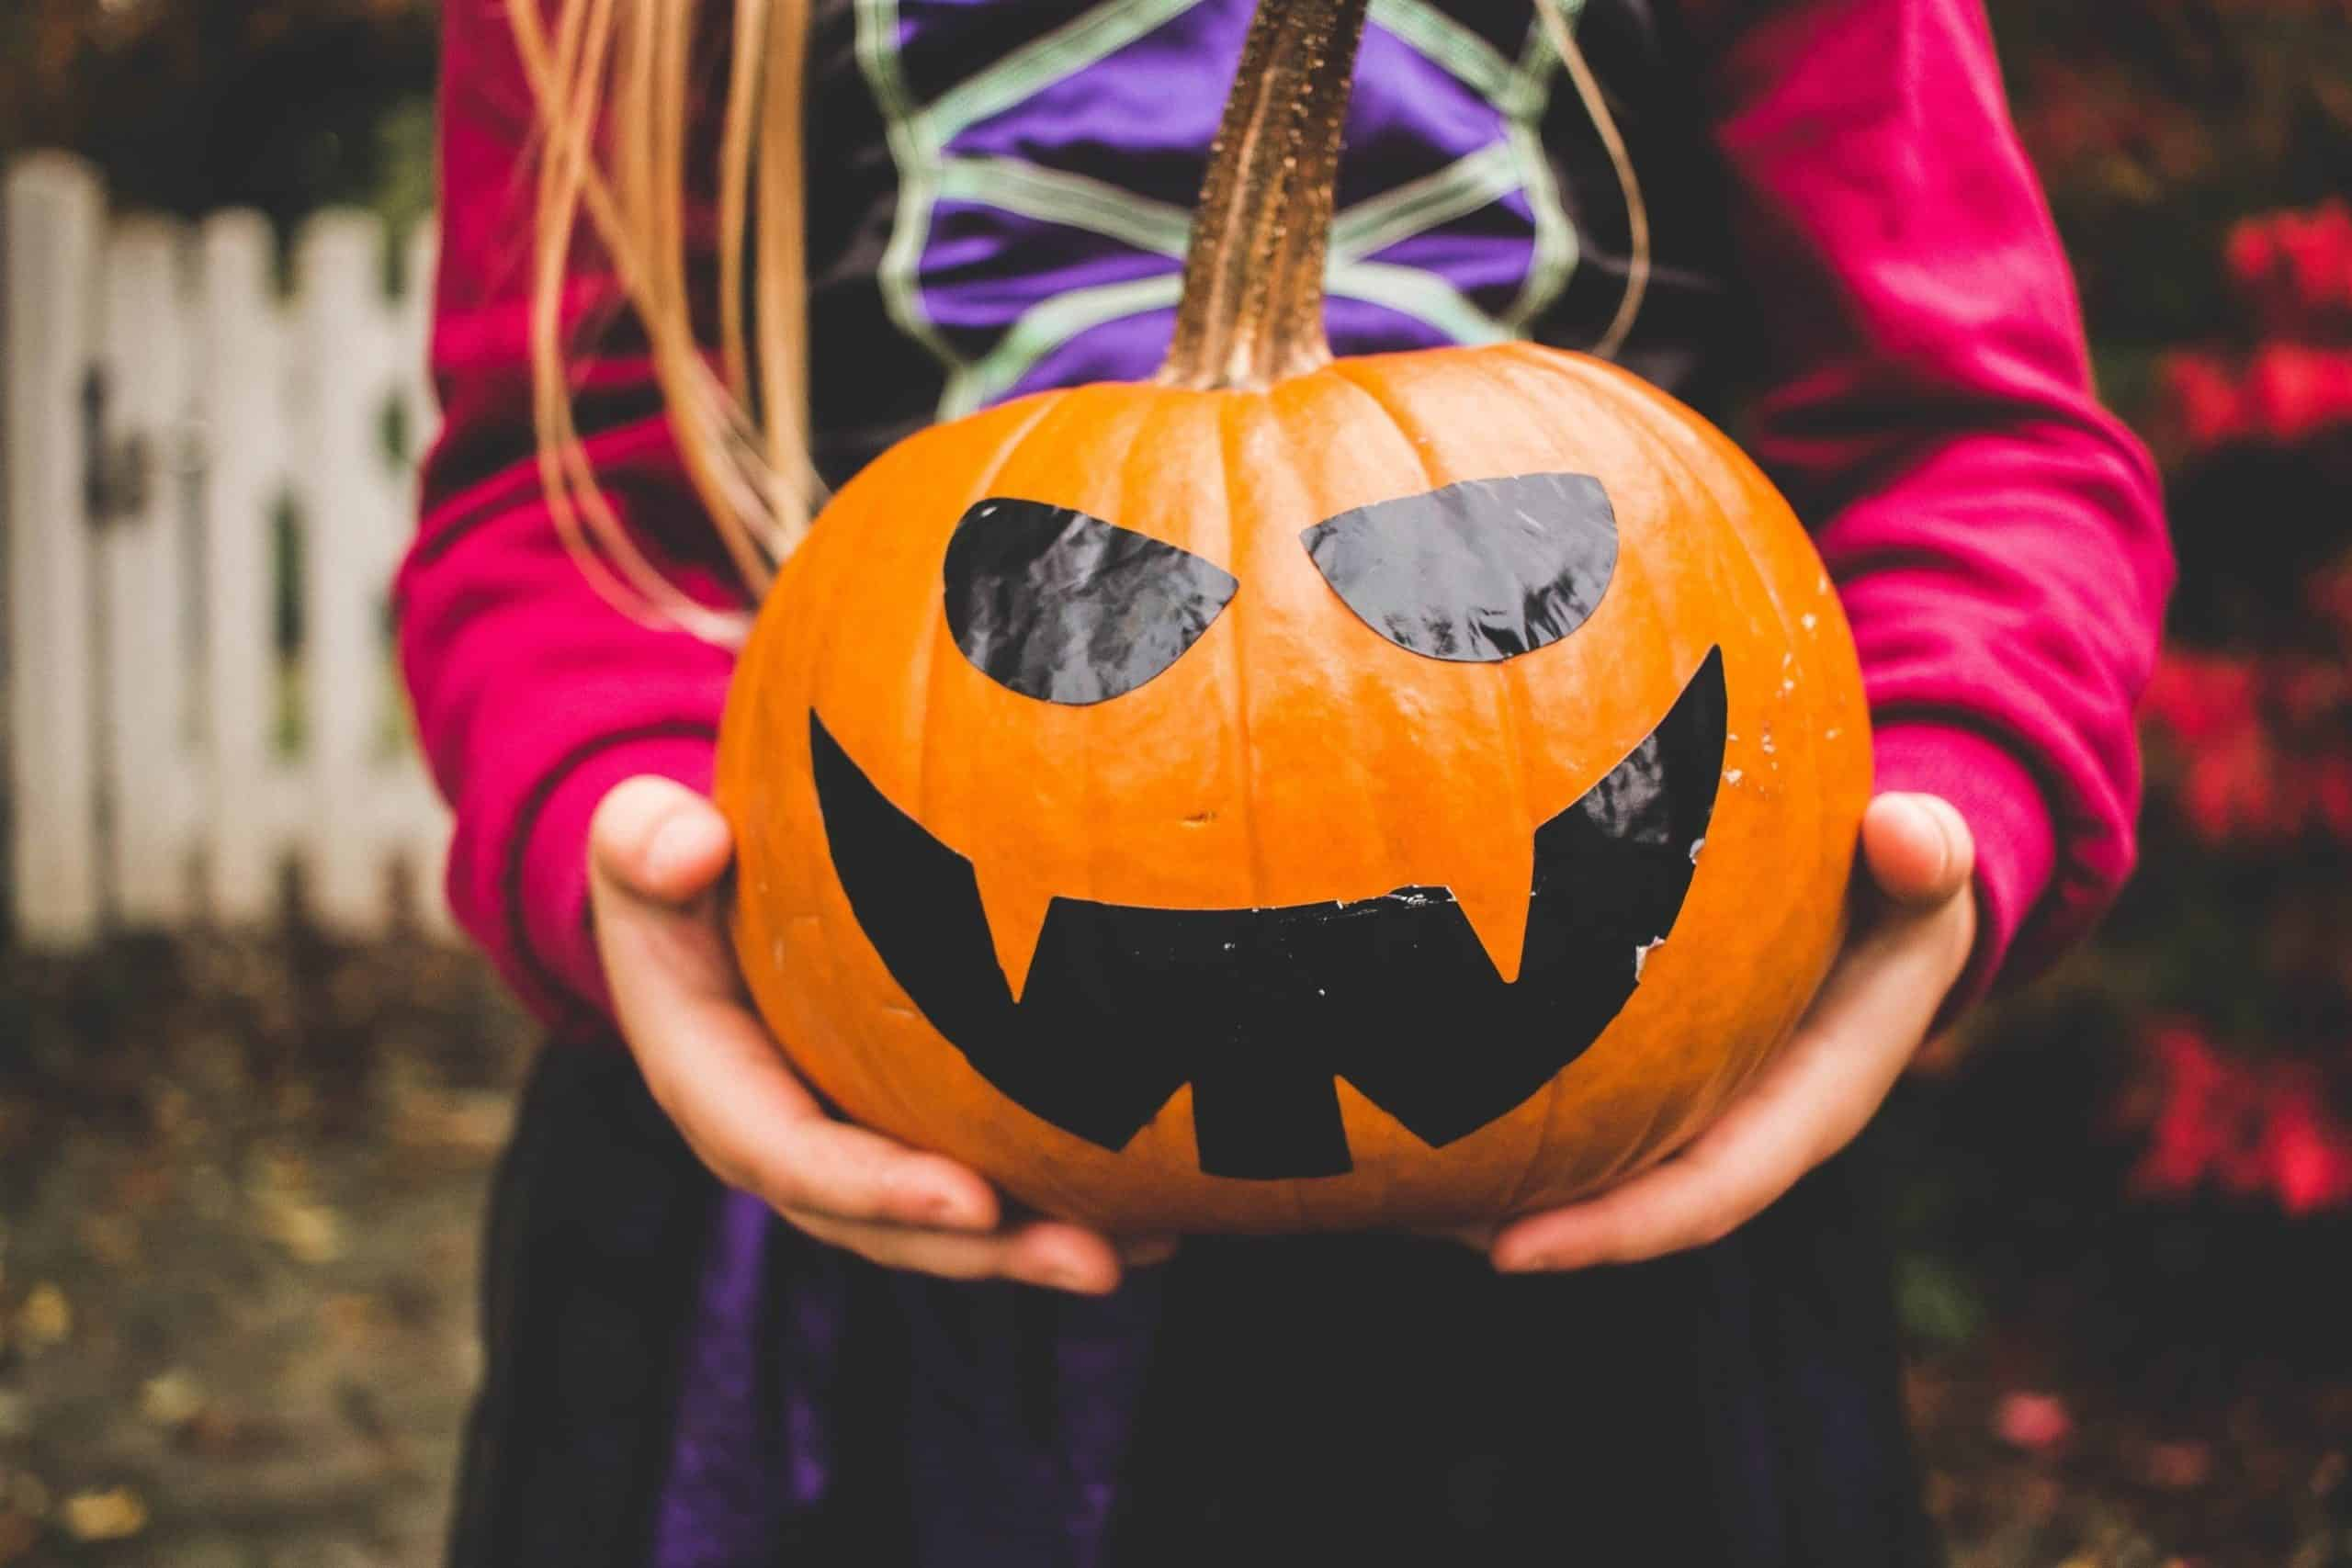 Little Girl Holding Decorated Large Pumpkin Ready For Halloween